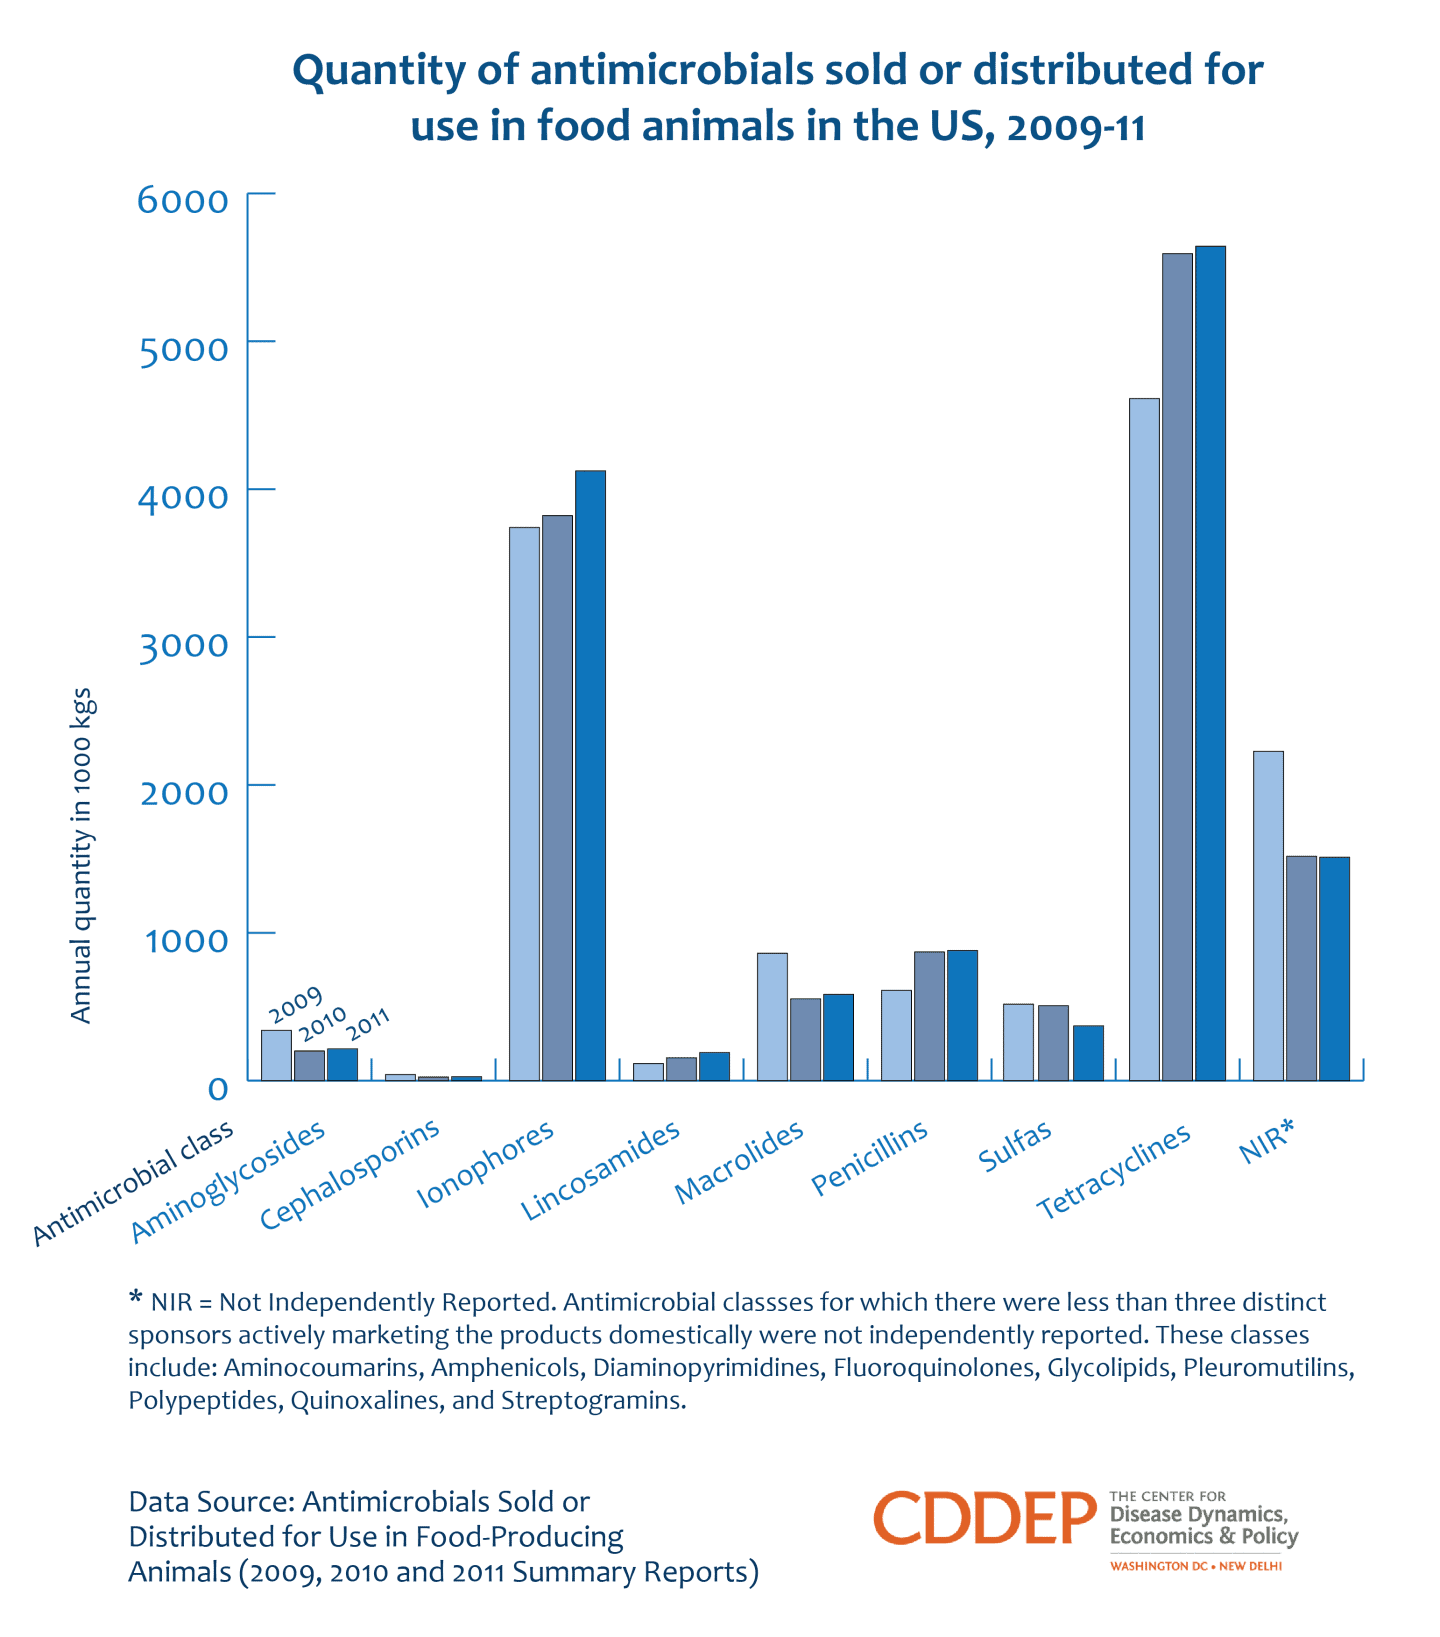 Quantity of antimicrobials sold or distributed for use in food animals is increasing in the US